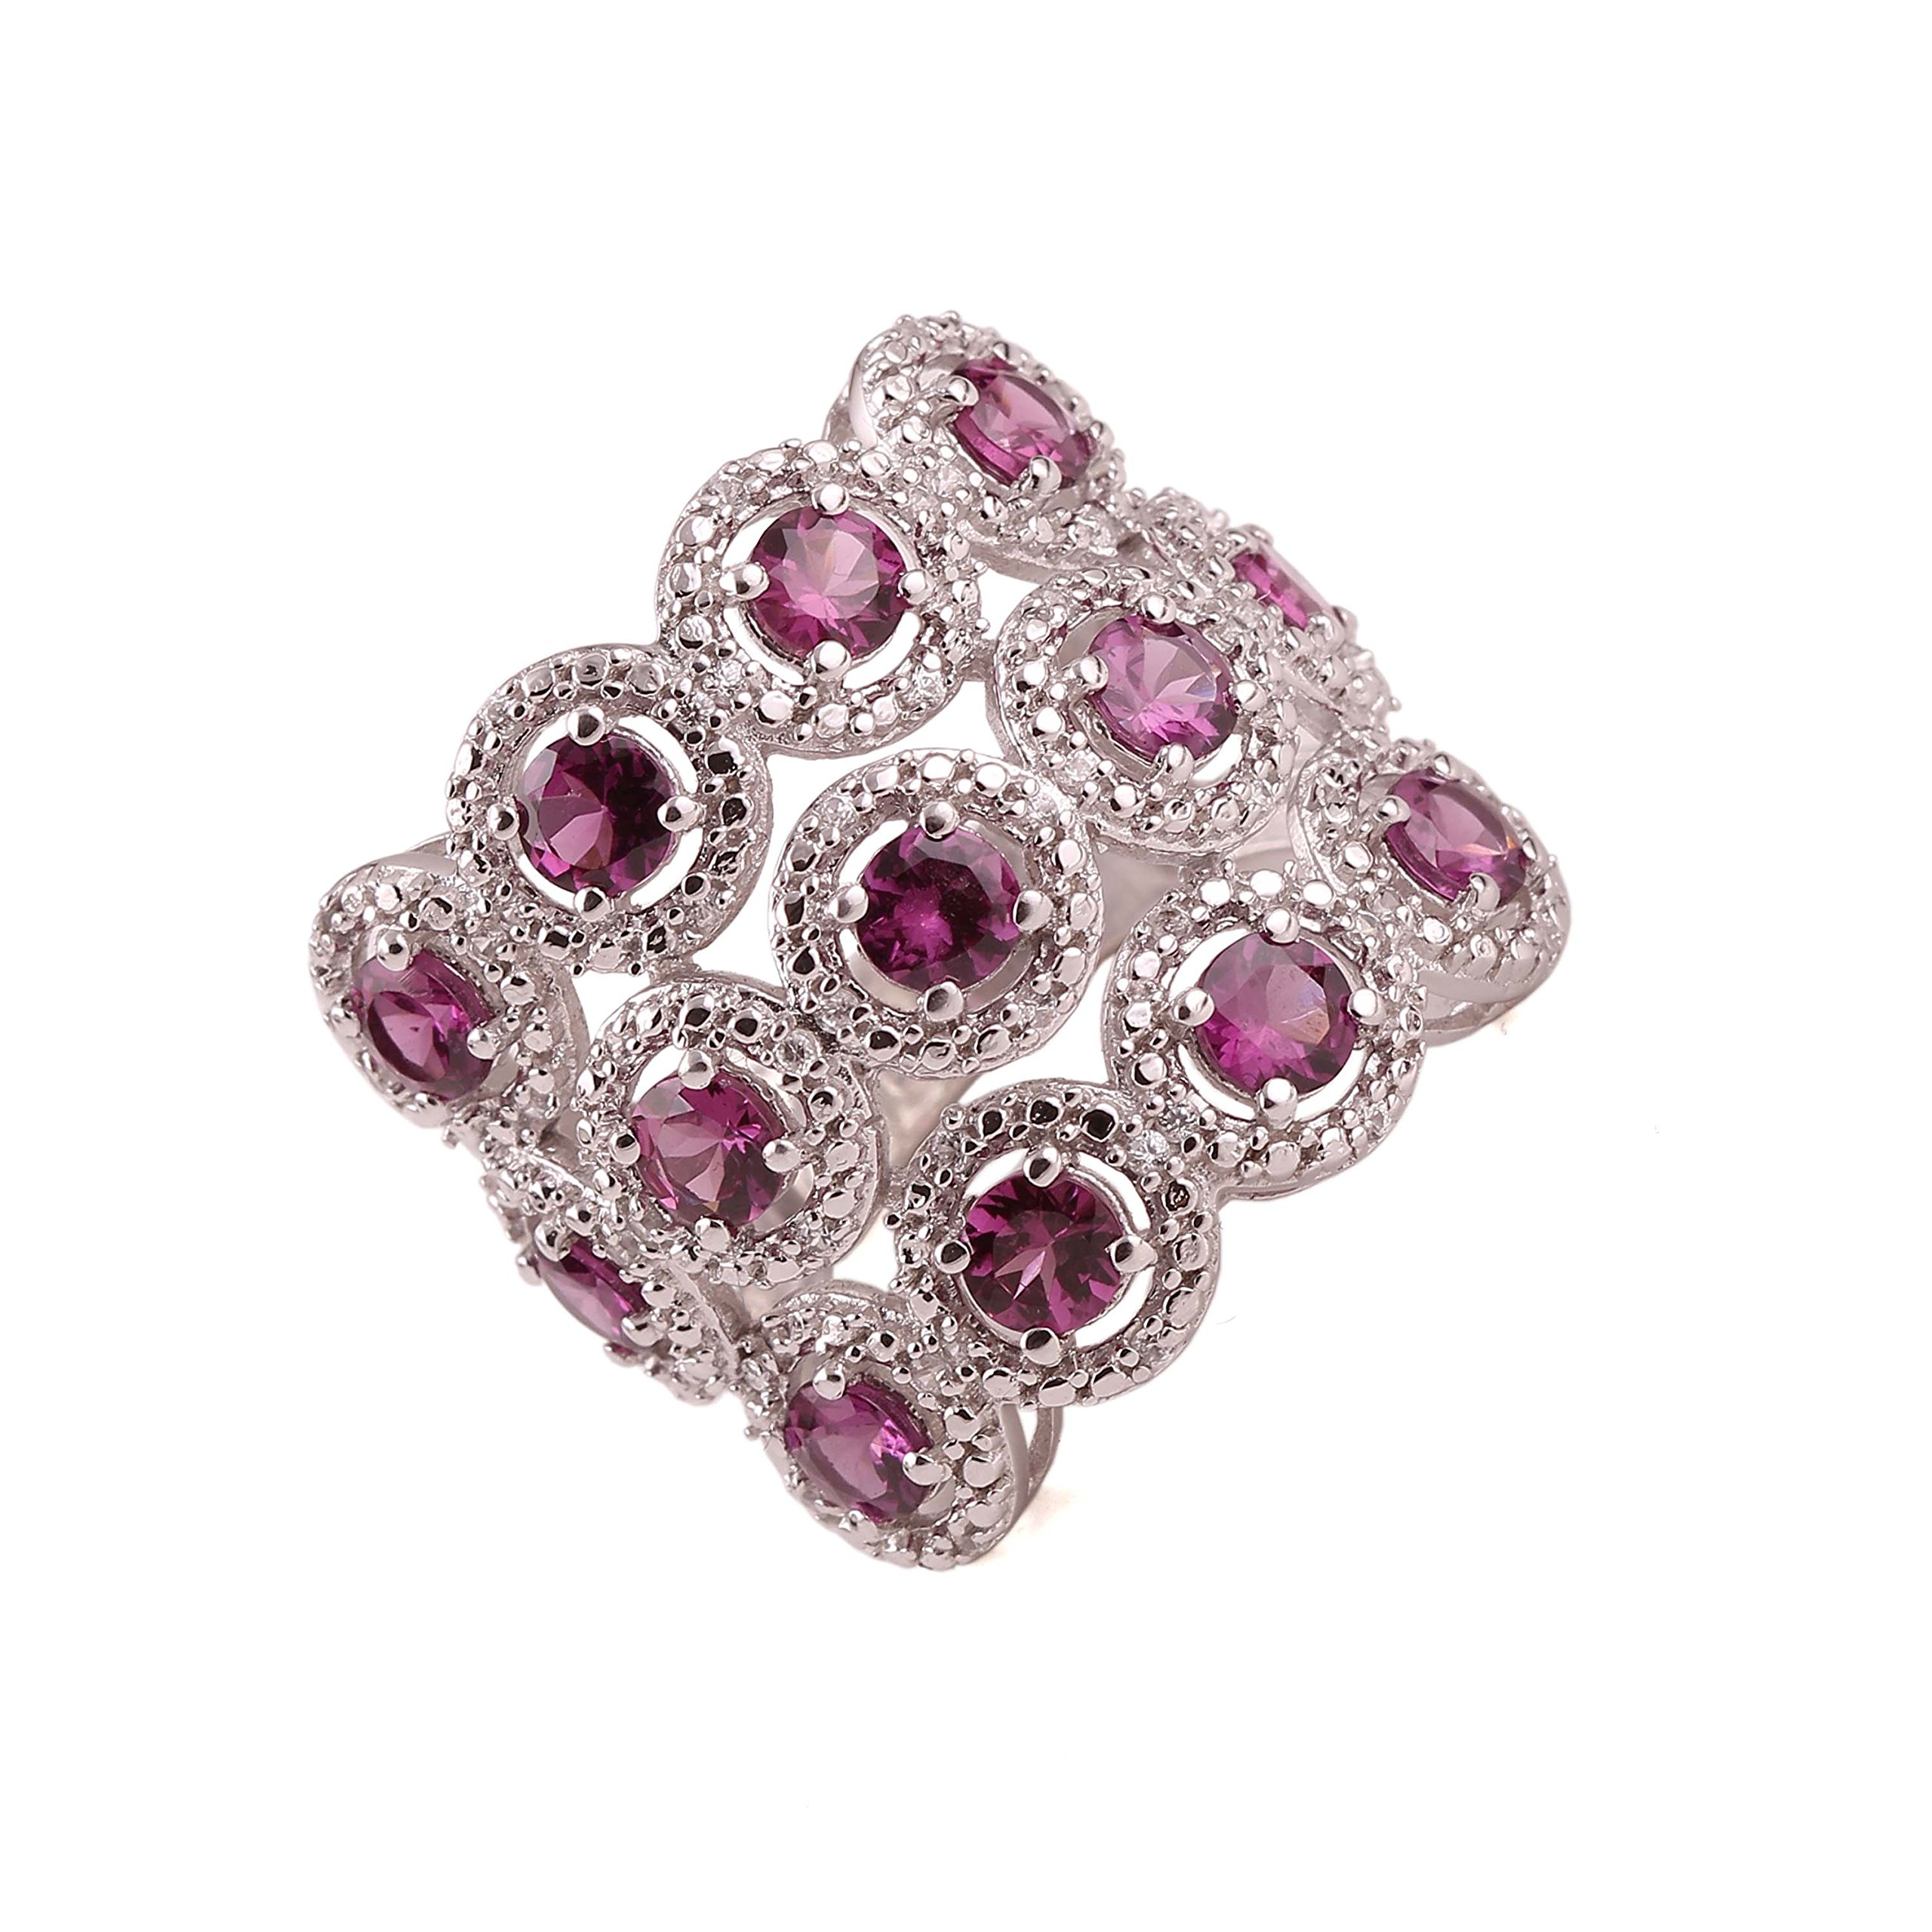 Neerupam collection 925 sterling silver natural pink tourmaline gemstone studded silver ring for women and girls